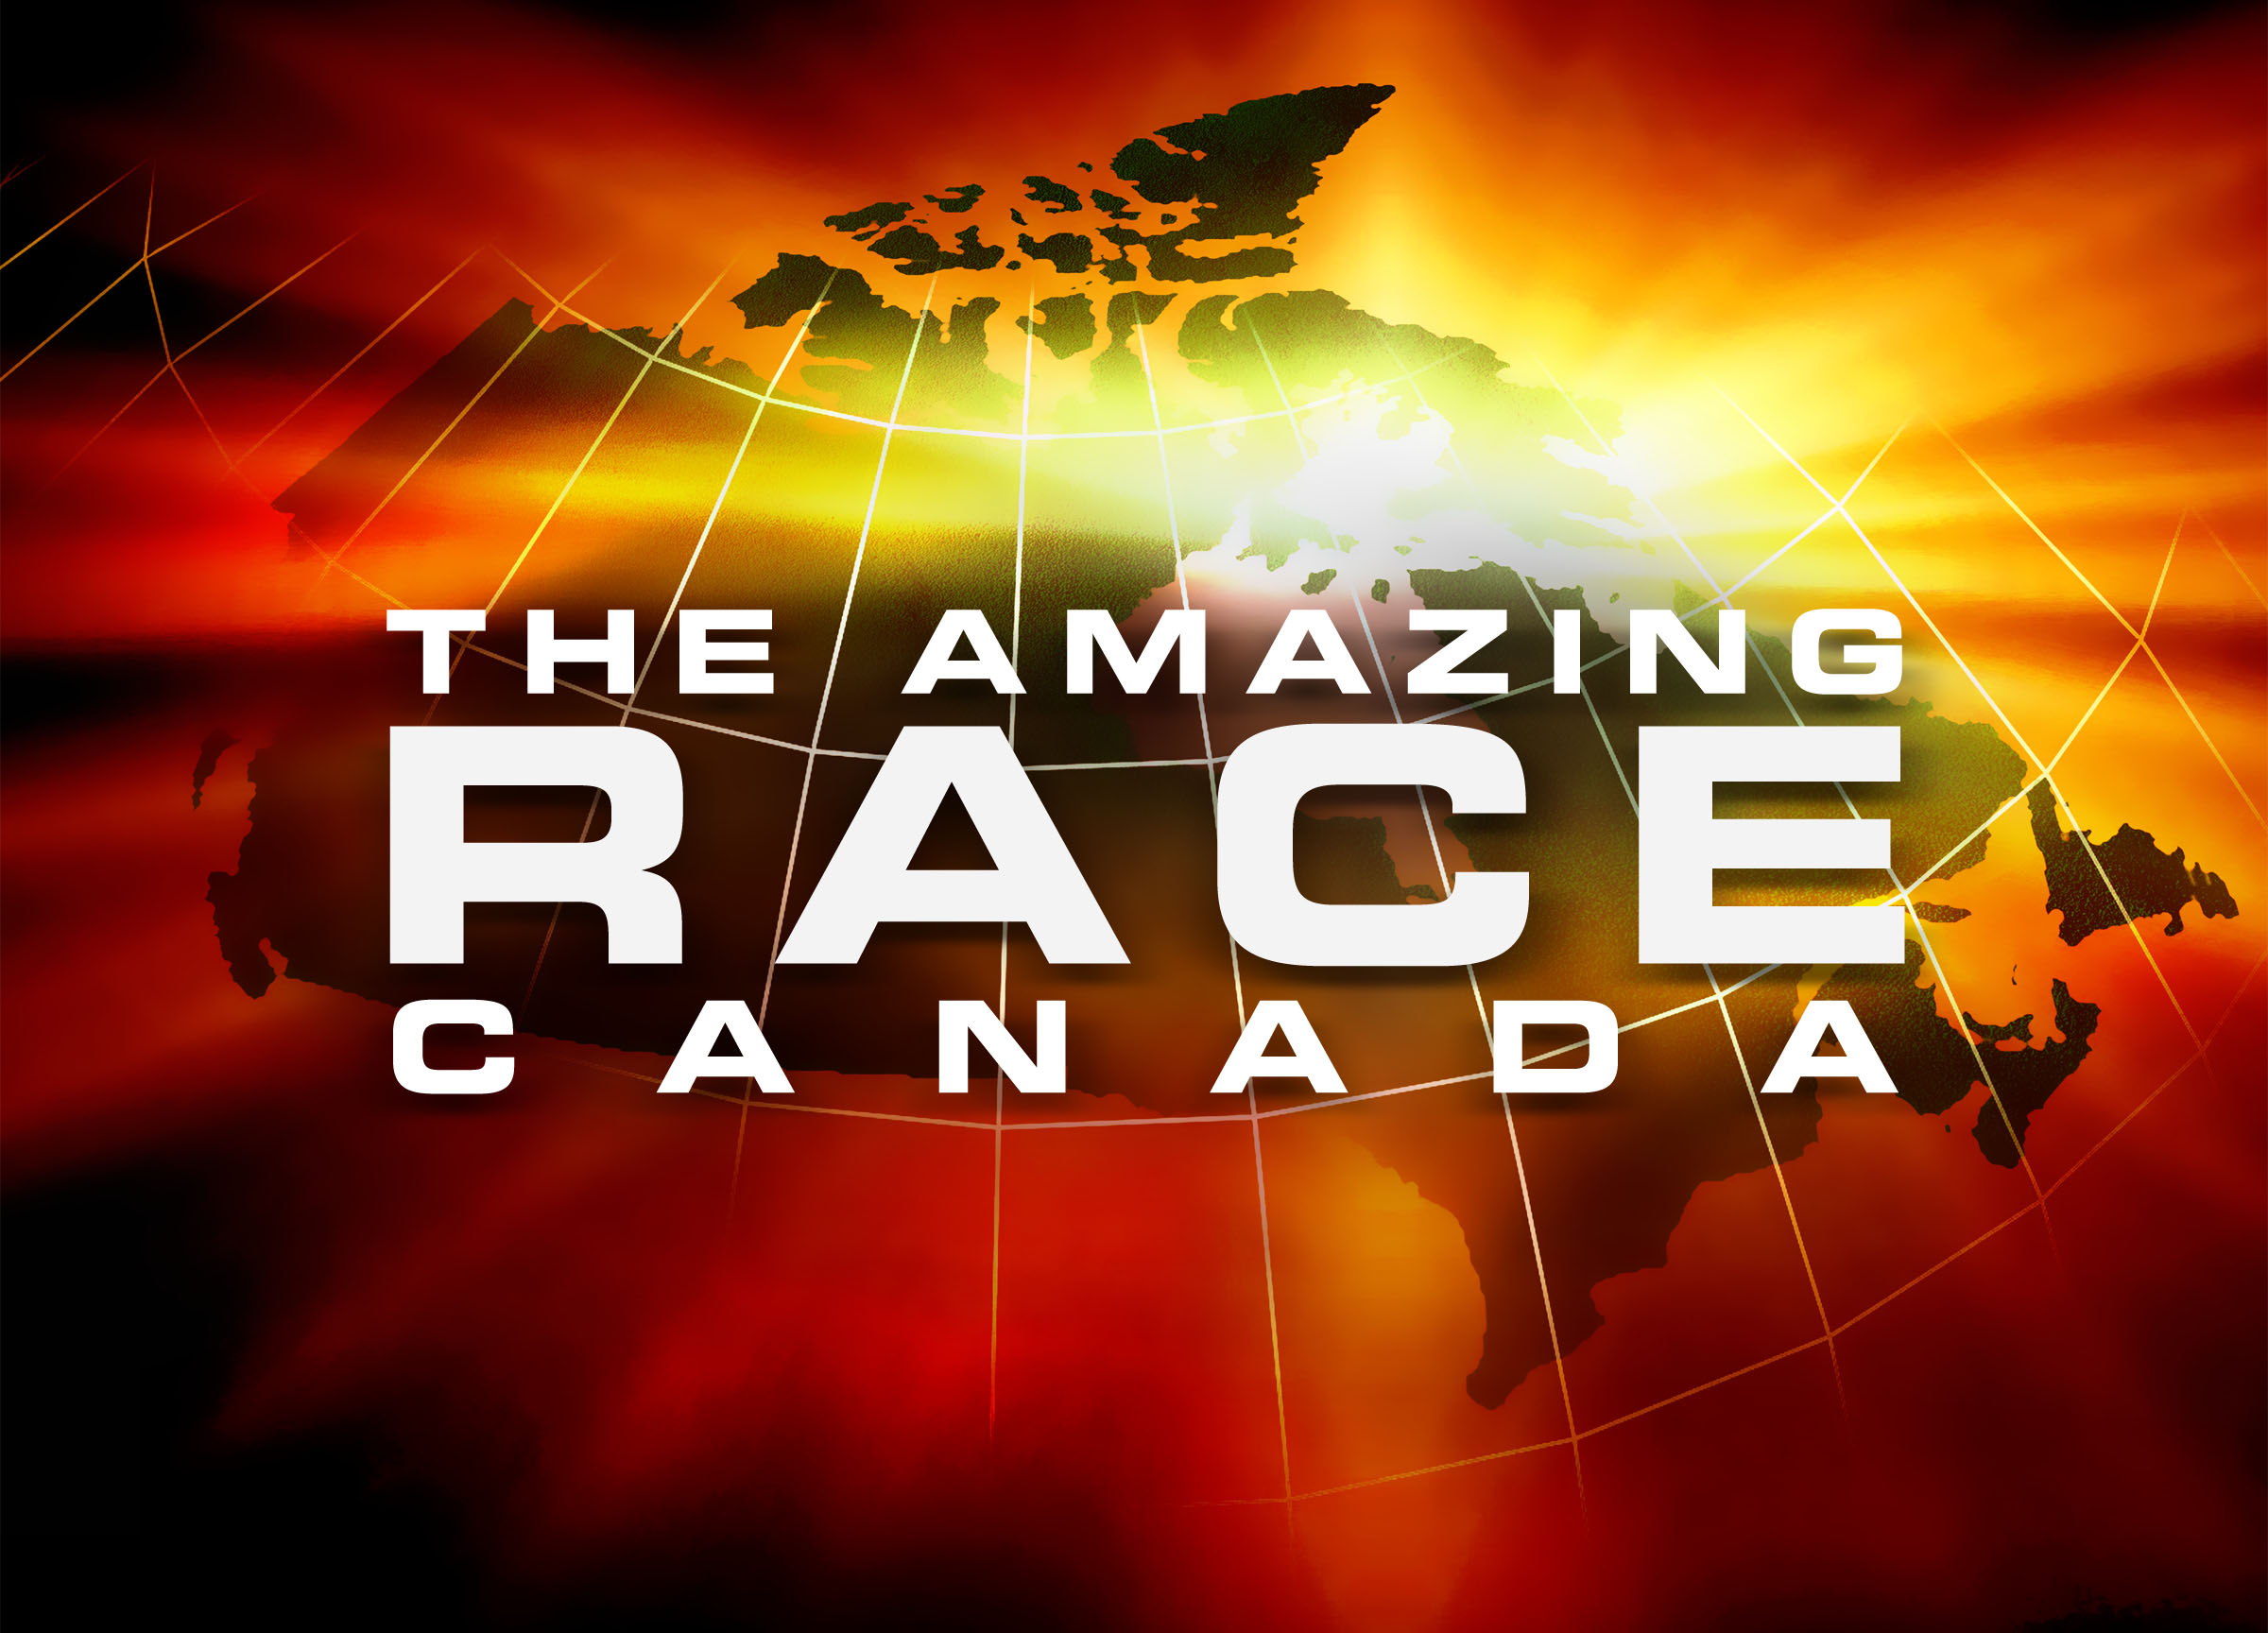 The Amazing Race Canada.jpg